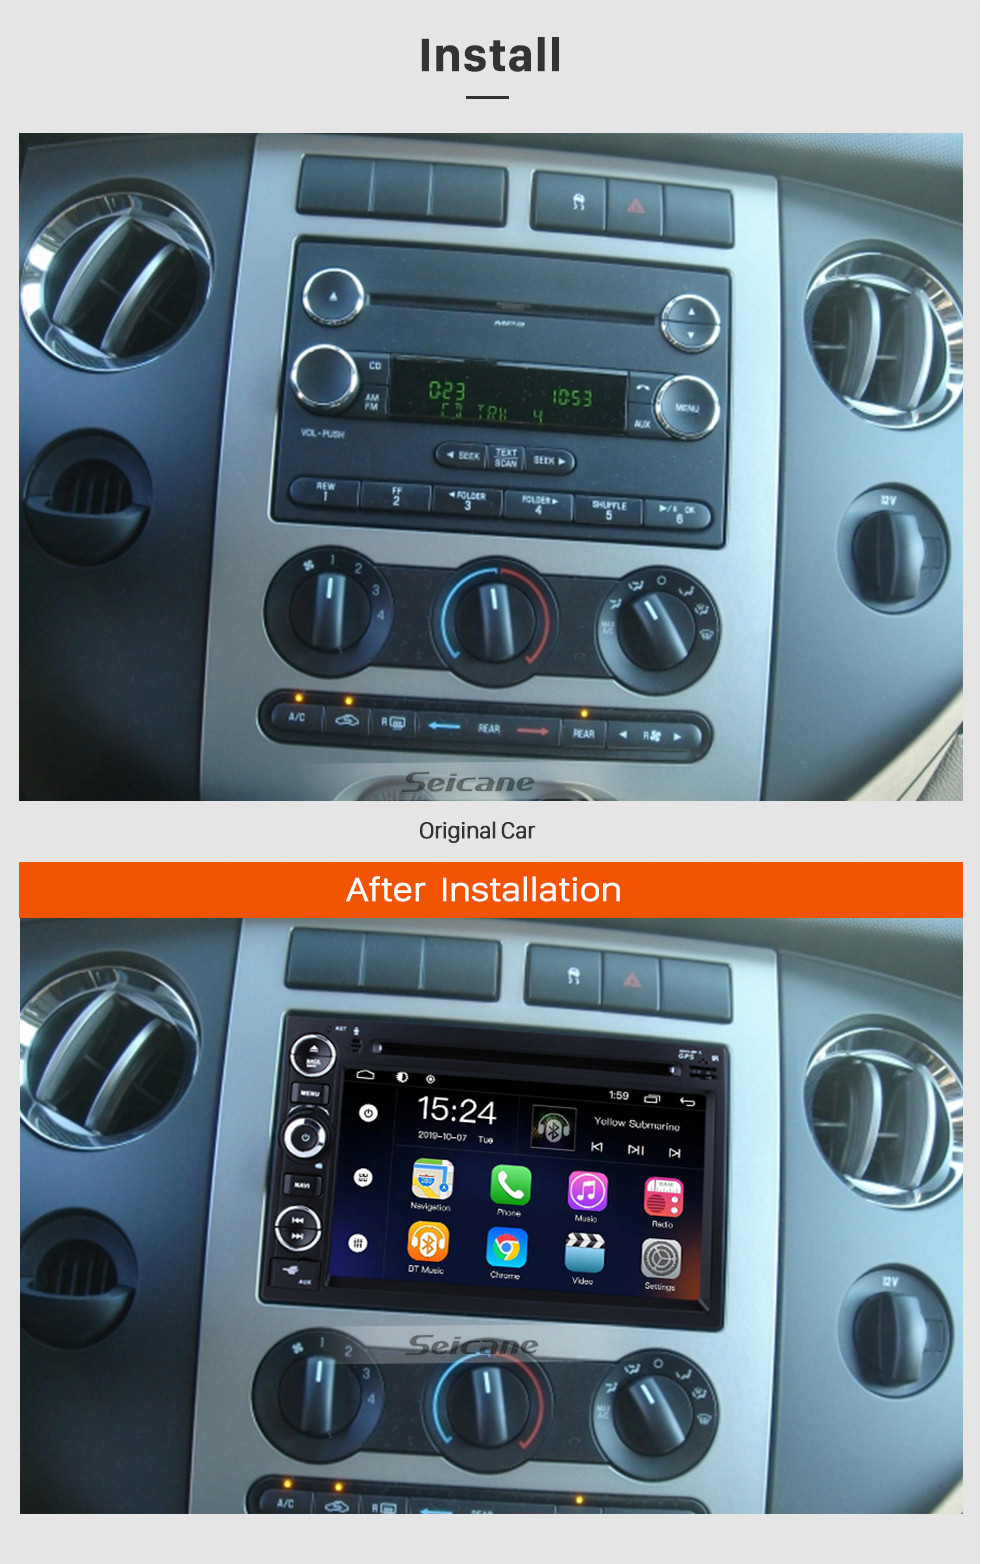 Seicane OEM 7 inch Android 9.0 Radio GPS navigation system for 2005-2009 Ford Mustang with Bluetooth DVD player HD 1024*600 touch screen OBD2 DVR Rearview camera TV 1080P Video USB SD 3G WIFI Steering Wheel Control